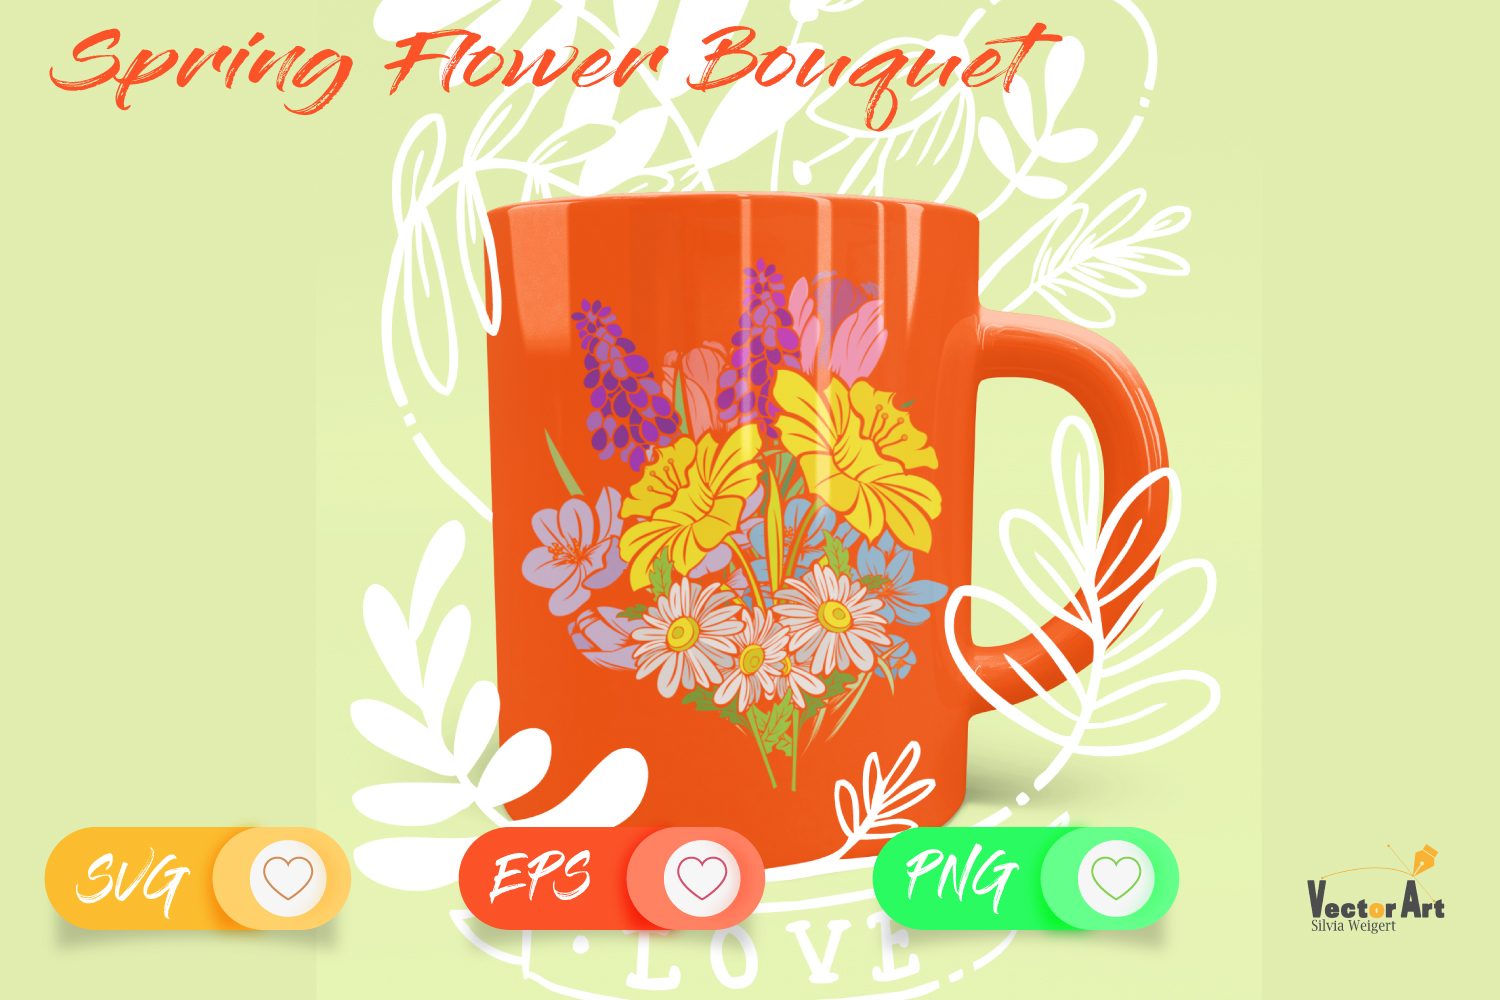 Spring Flower Bouqet - Cut File with 2 Layers example image 5